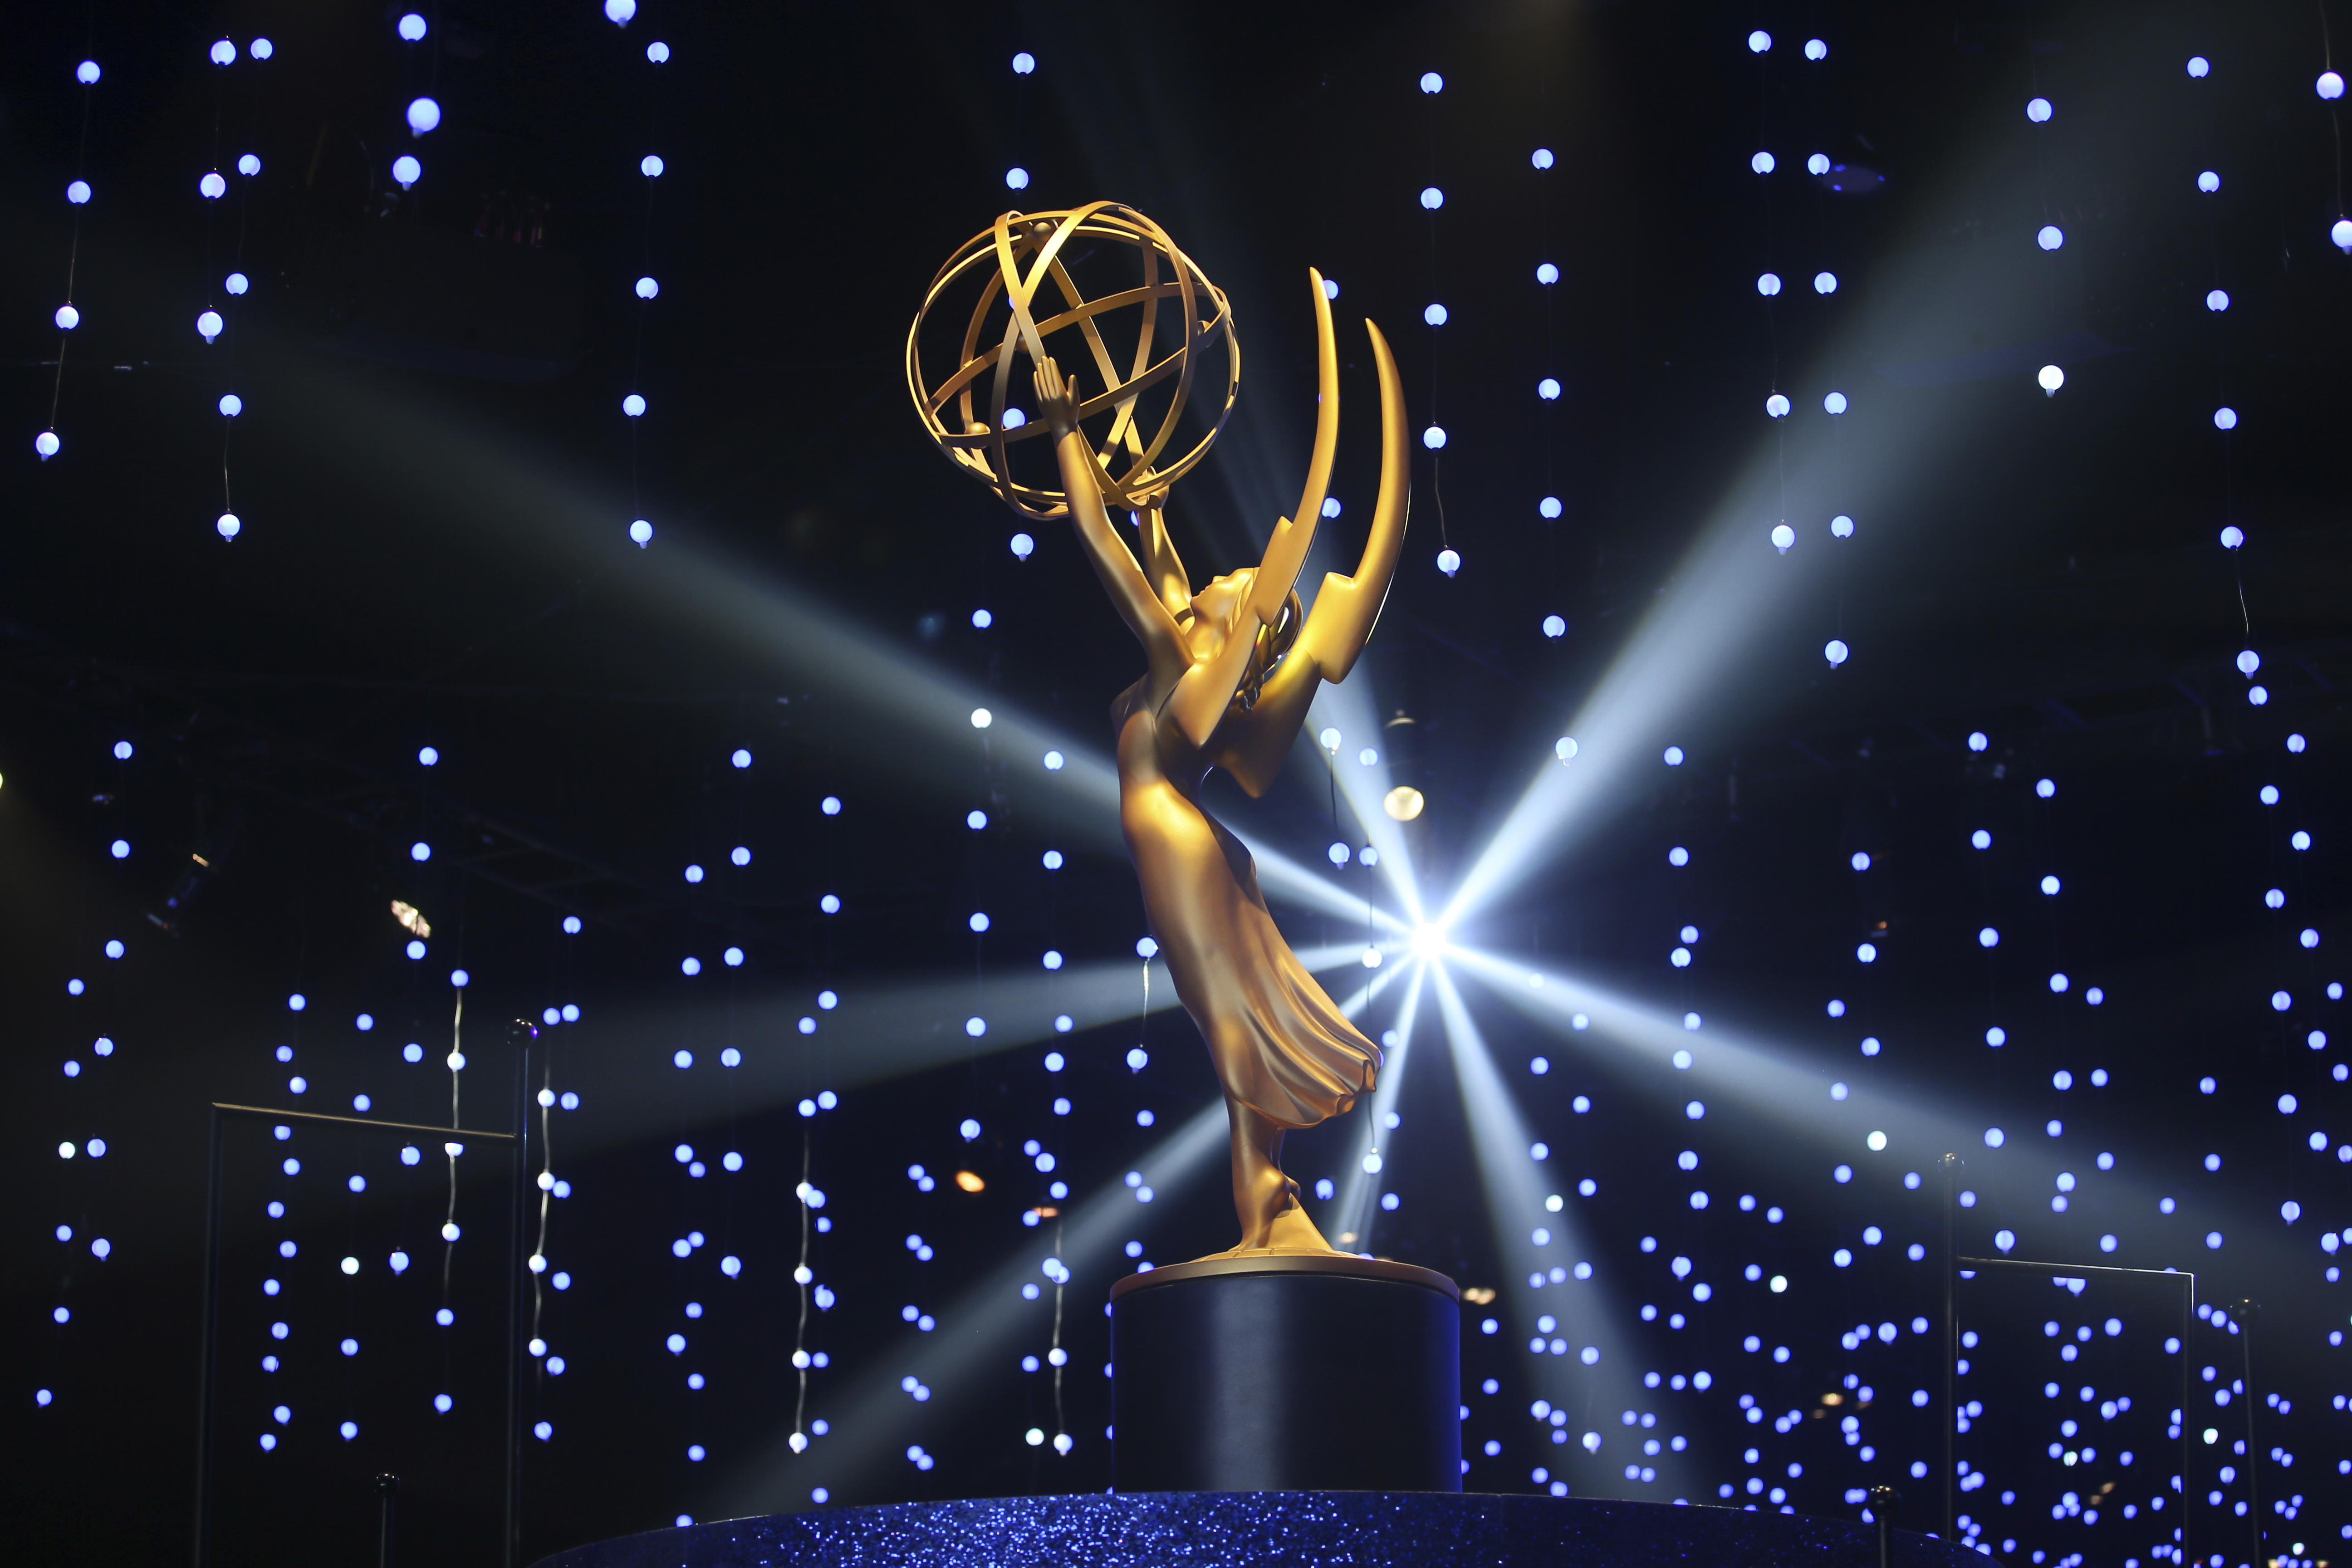 Disney Plus and 'The Mandalorian' Win First Emmys on Night Three of Creative Arts Ceremonies (Full Winners List)